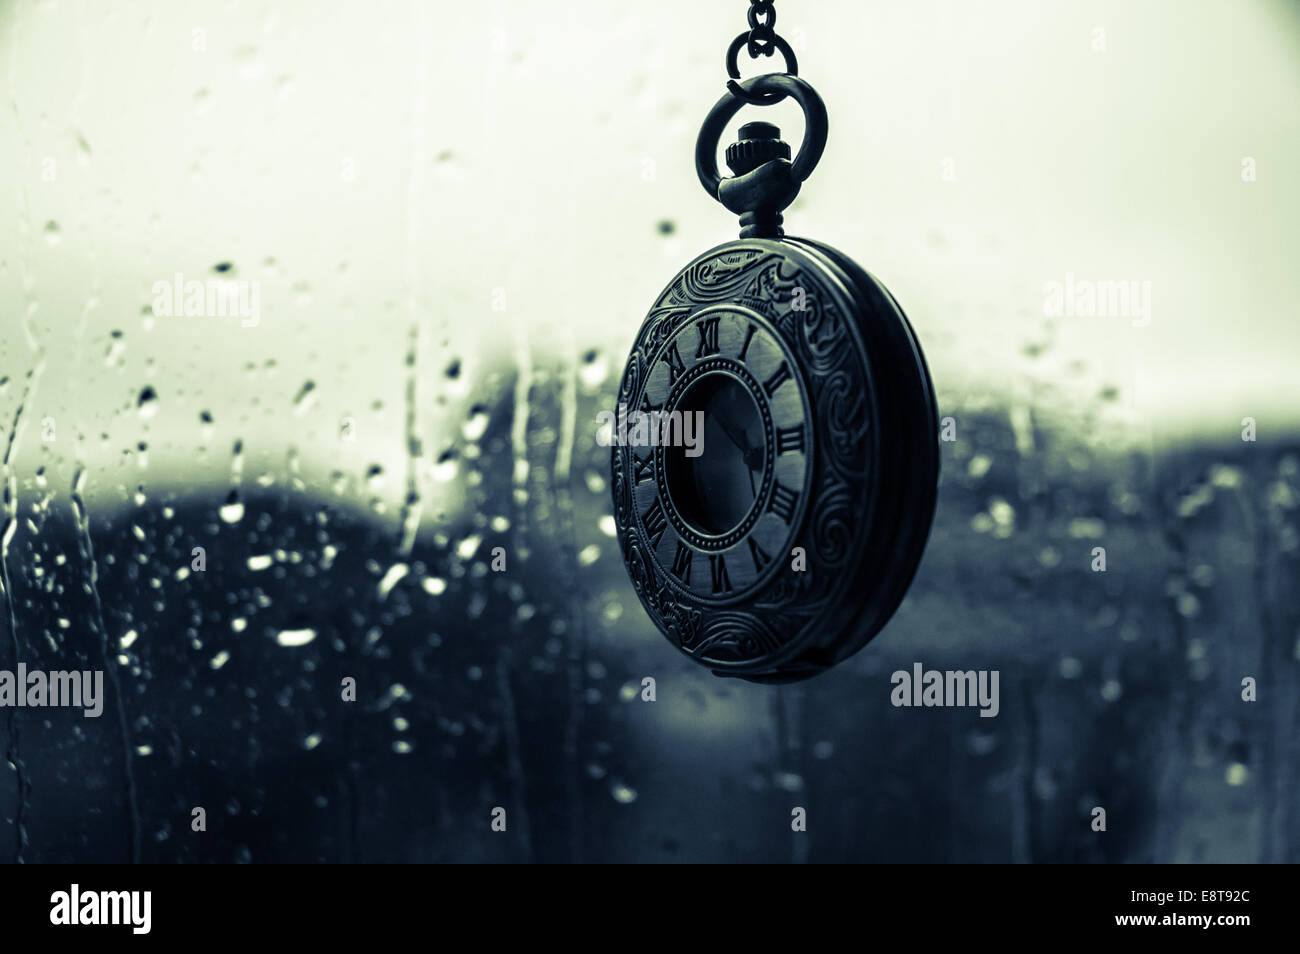 An old antique clock in the rain - Stock Image